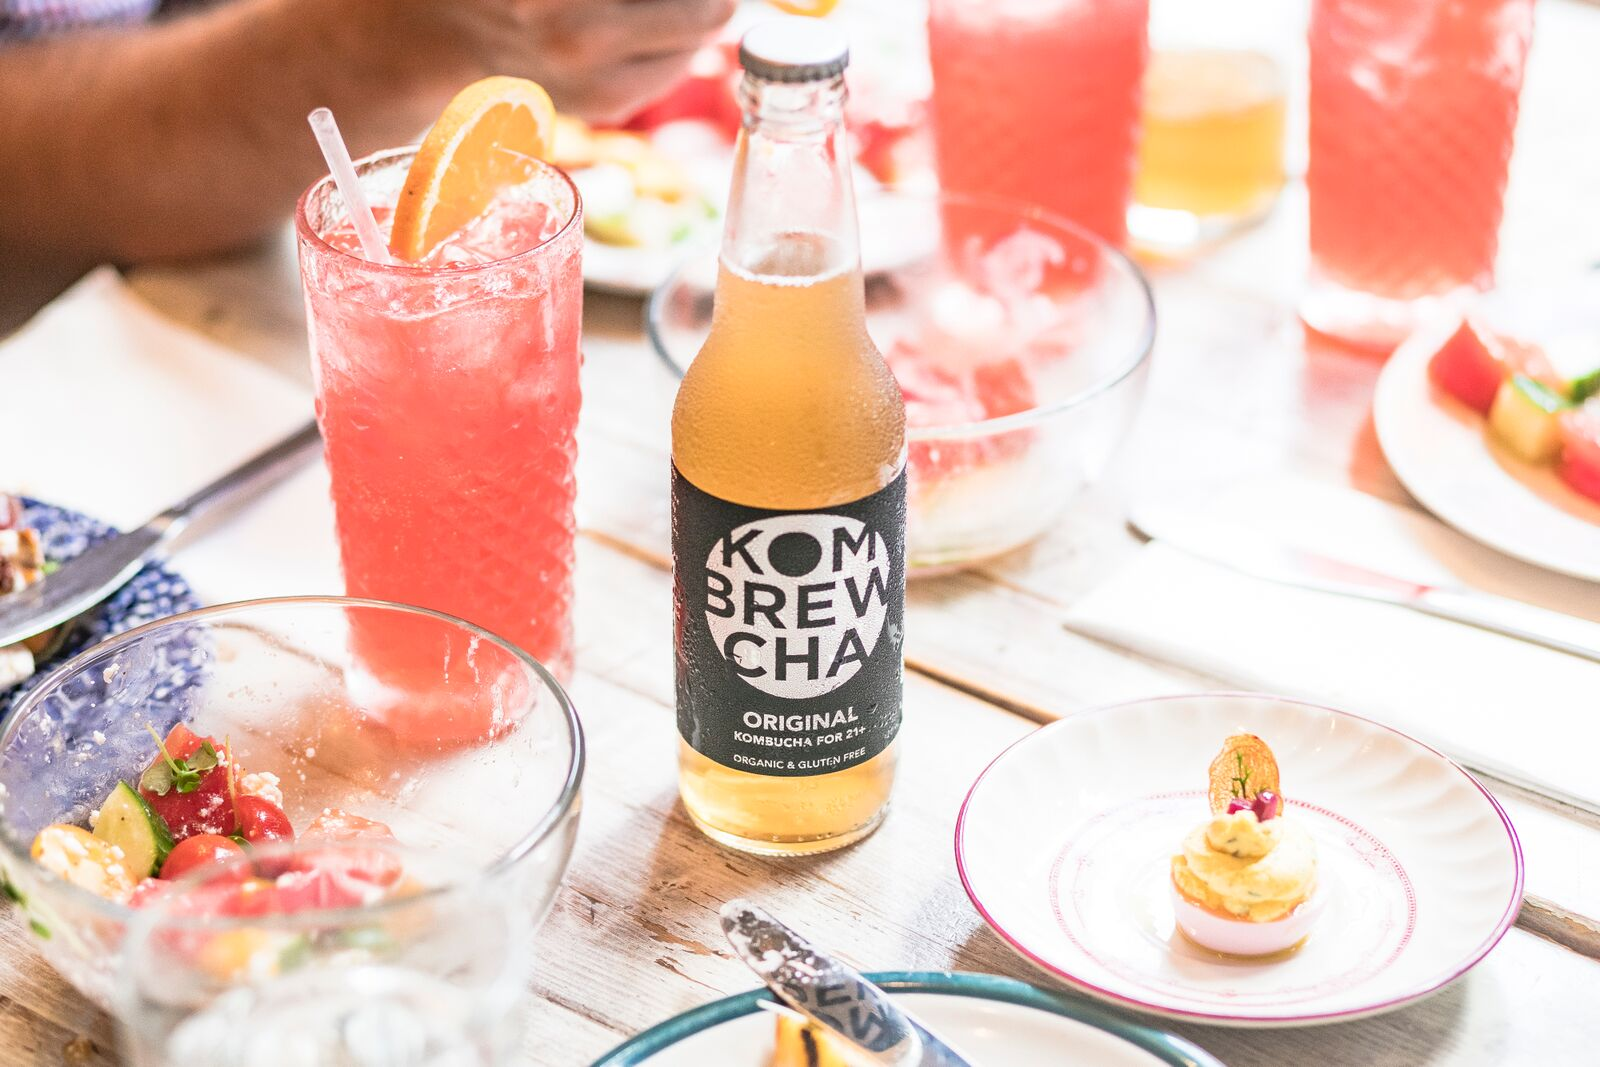 Kombrewcha over mimosas for brunch, anyone?